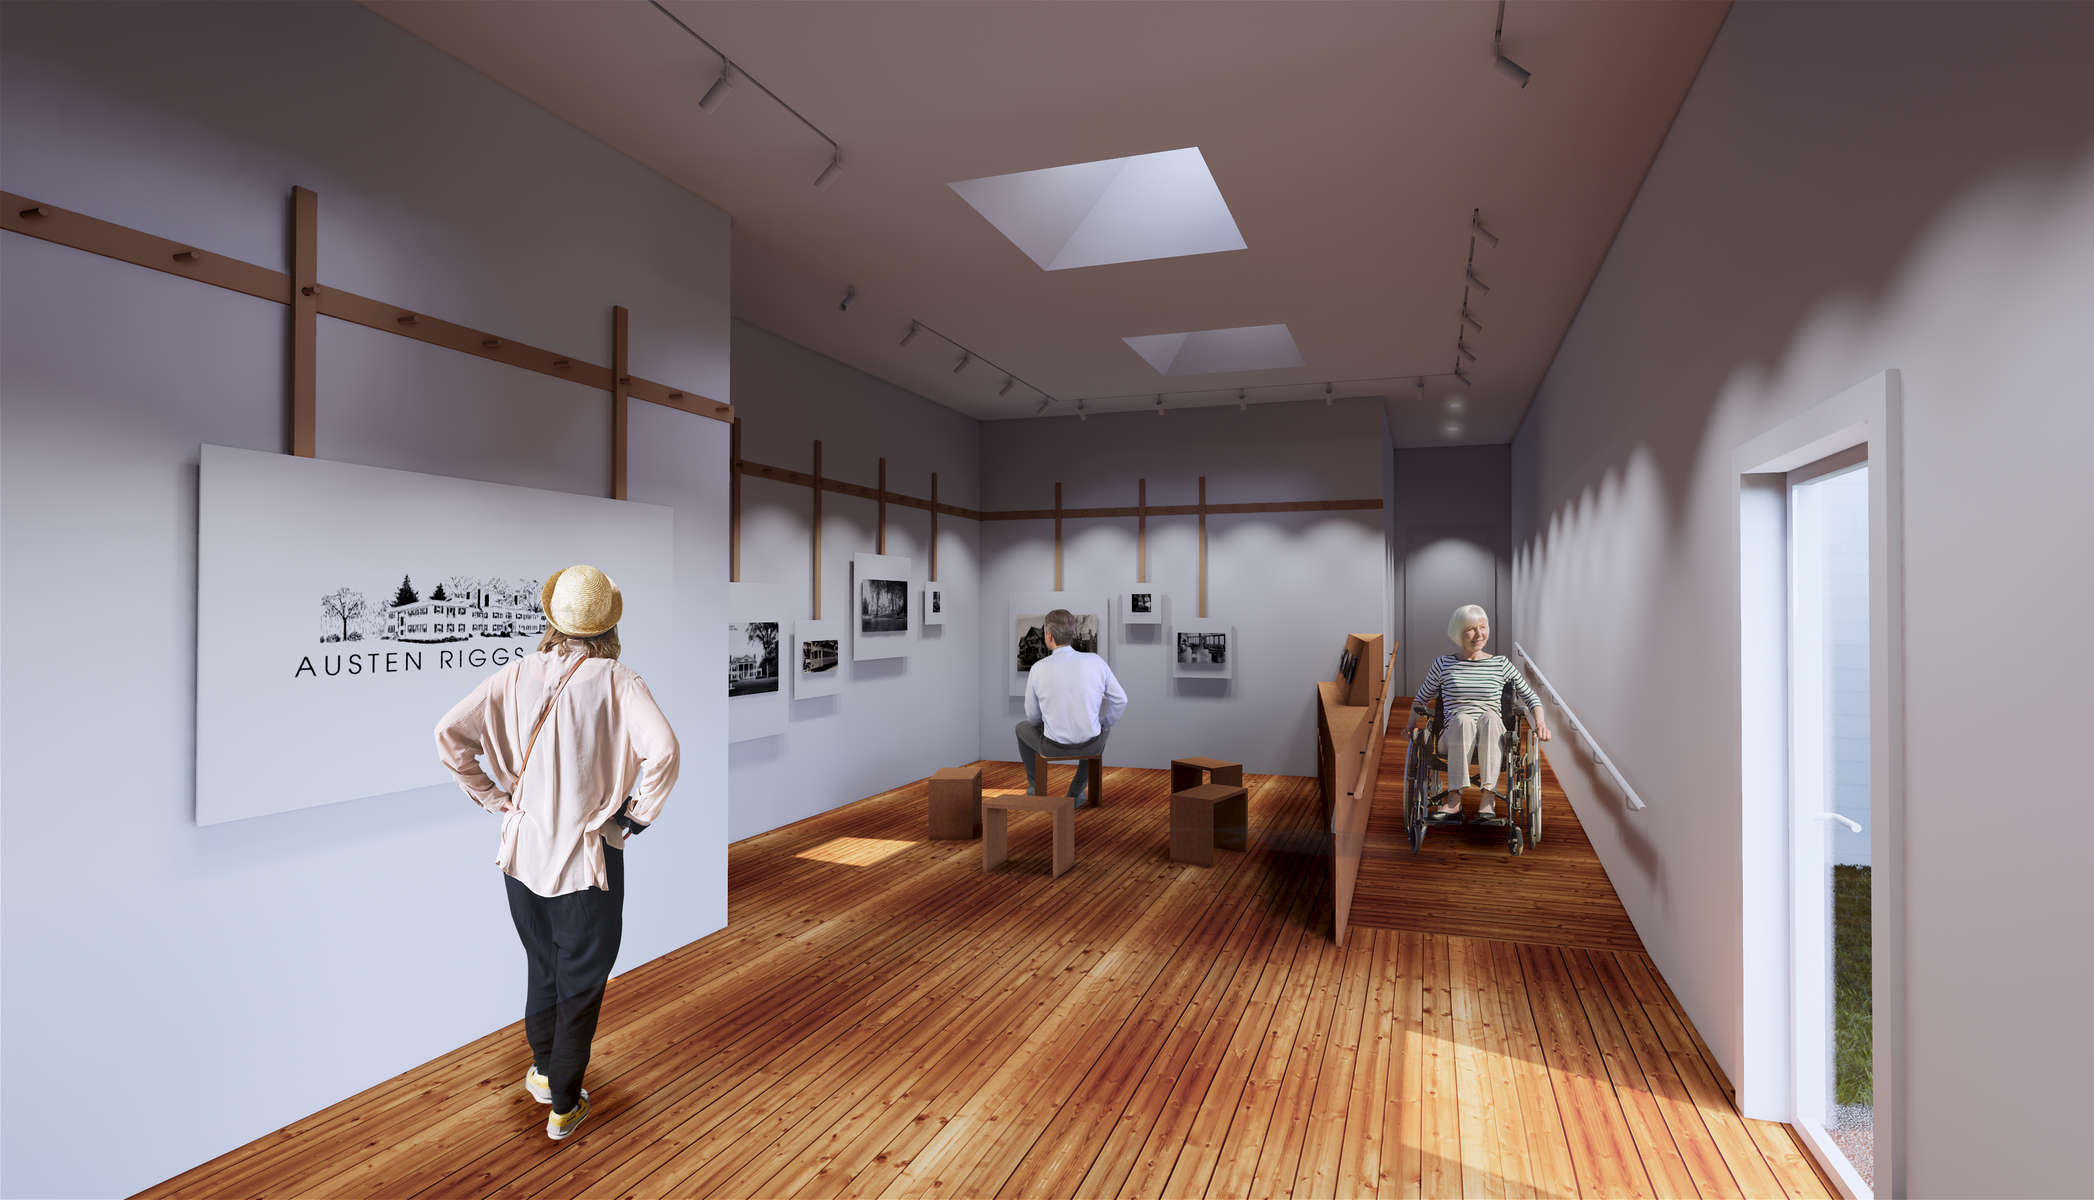 In collaboration with Pamela Sandler Architects, ikd is designing the gallery and exhibition for the 100 Centennial of the Austen Riggs.